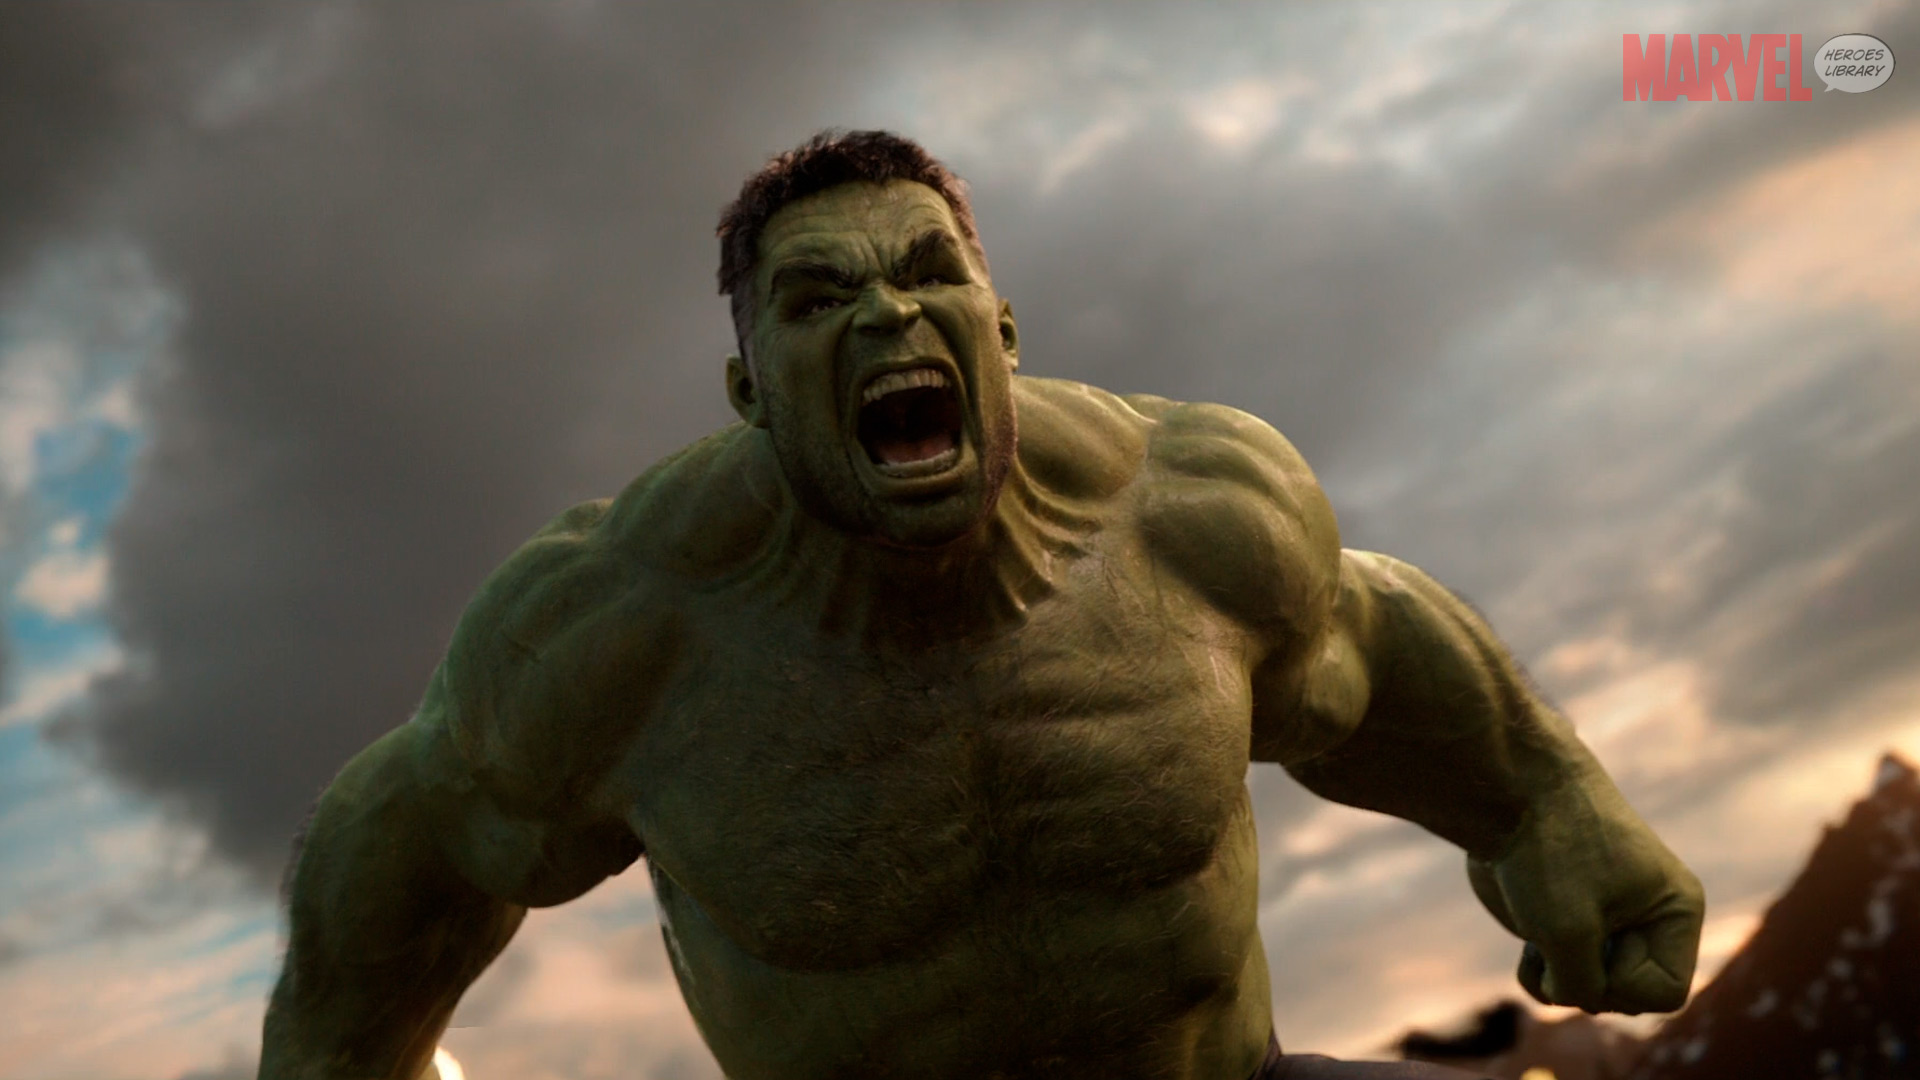 Hulk (Ragnarok) HD Wallpaper